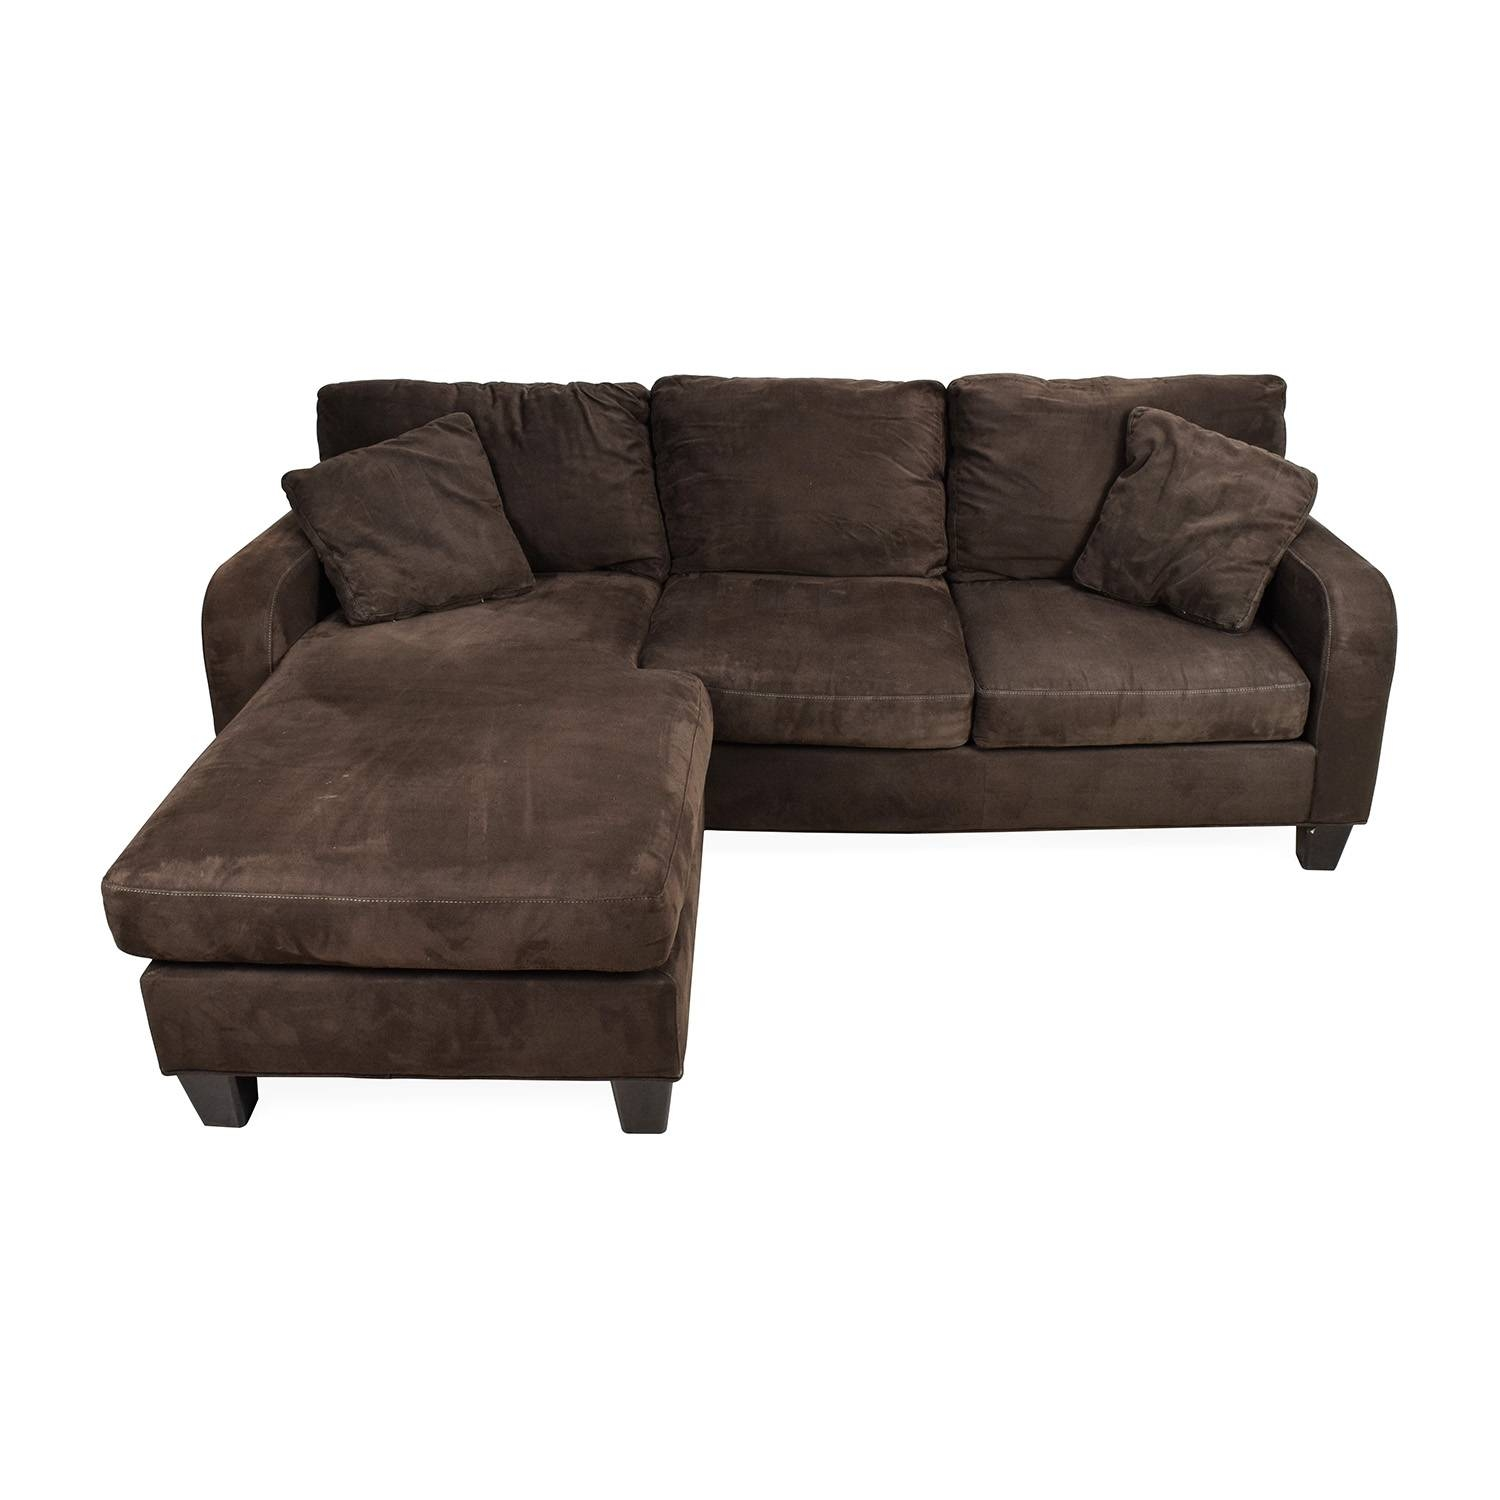 Furniture: Cindy Crawford Sectional Sofa For Elegant Living Room In Cindy Crawford Microfiber Sofas (Photo 3 of 15)